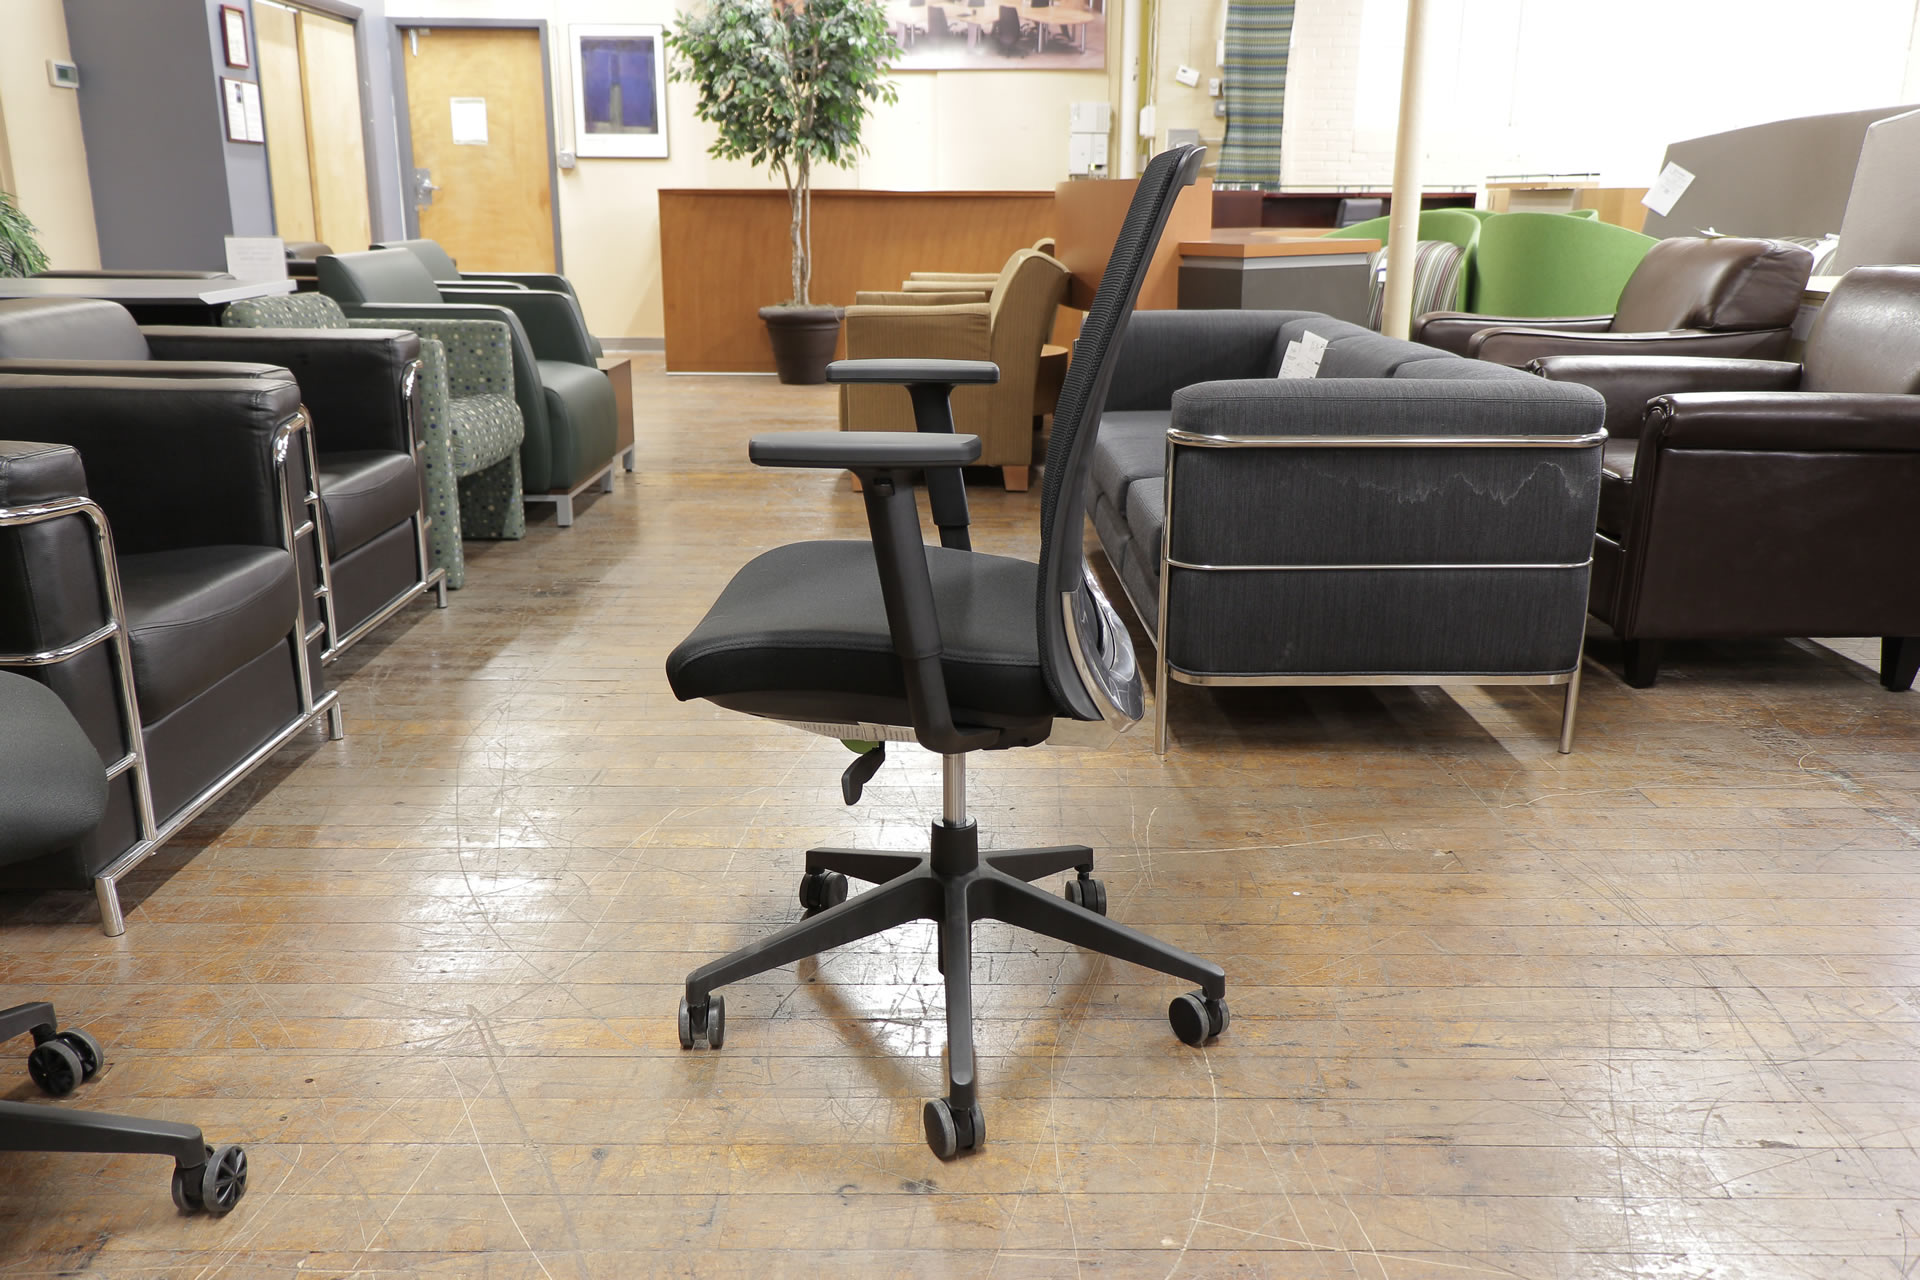 peartreeofficefurniture_peartreeofficefurniture_peartreeofficefurniture_img_9584.jpg